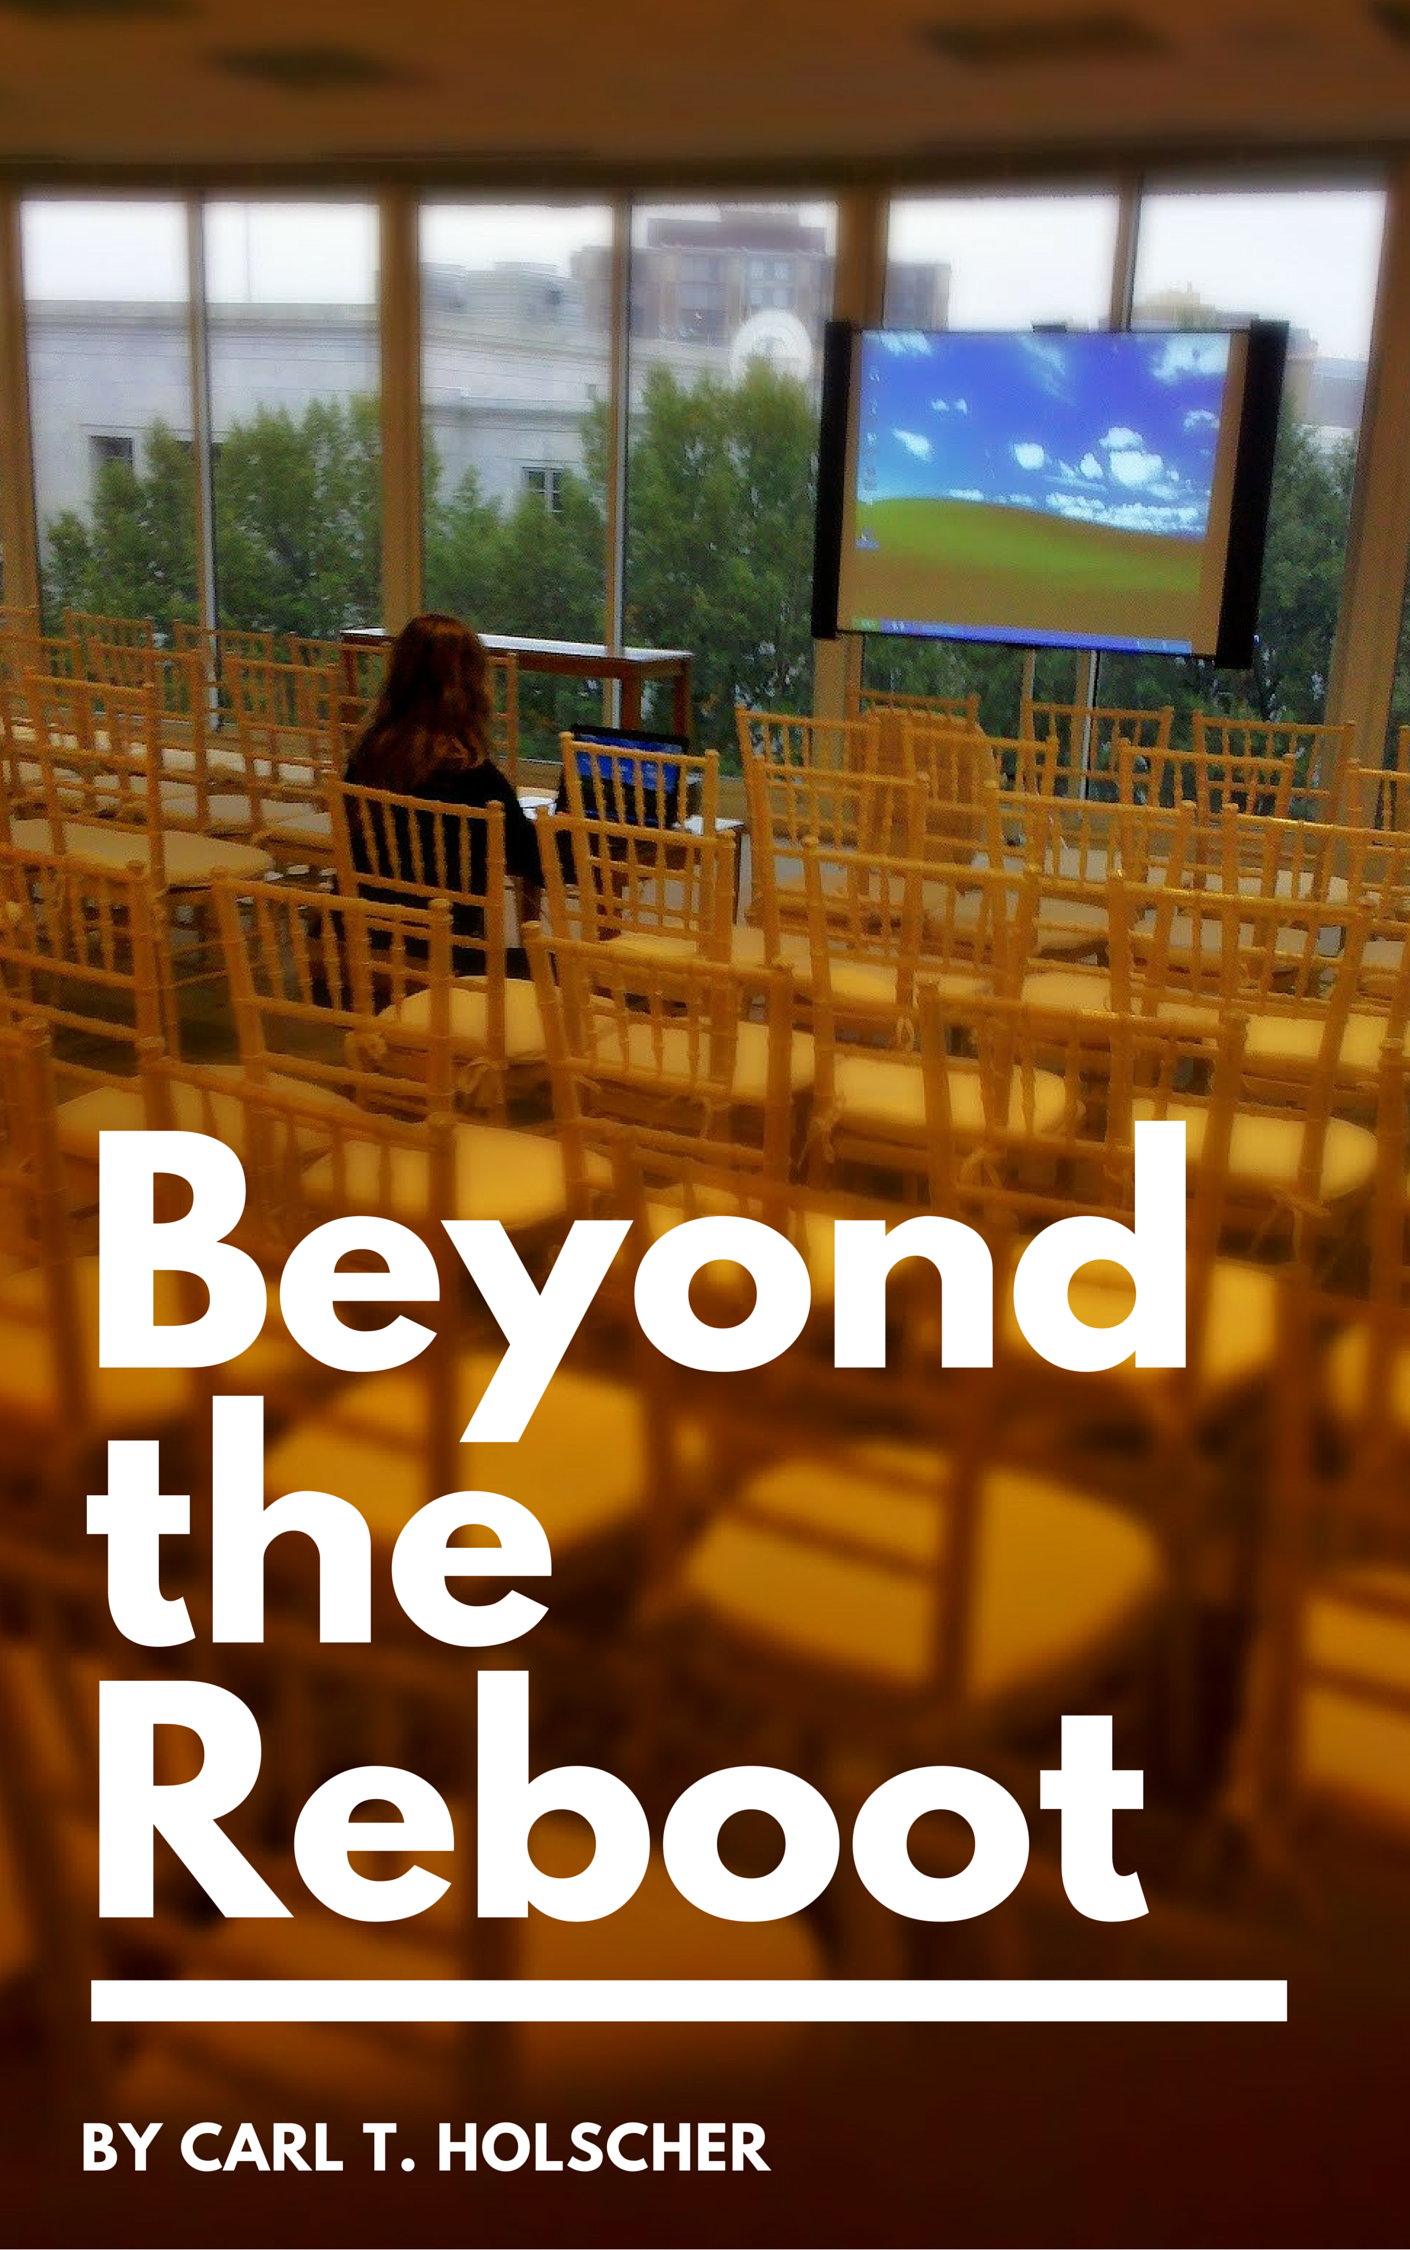 Beyond the Reboot